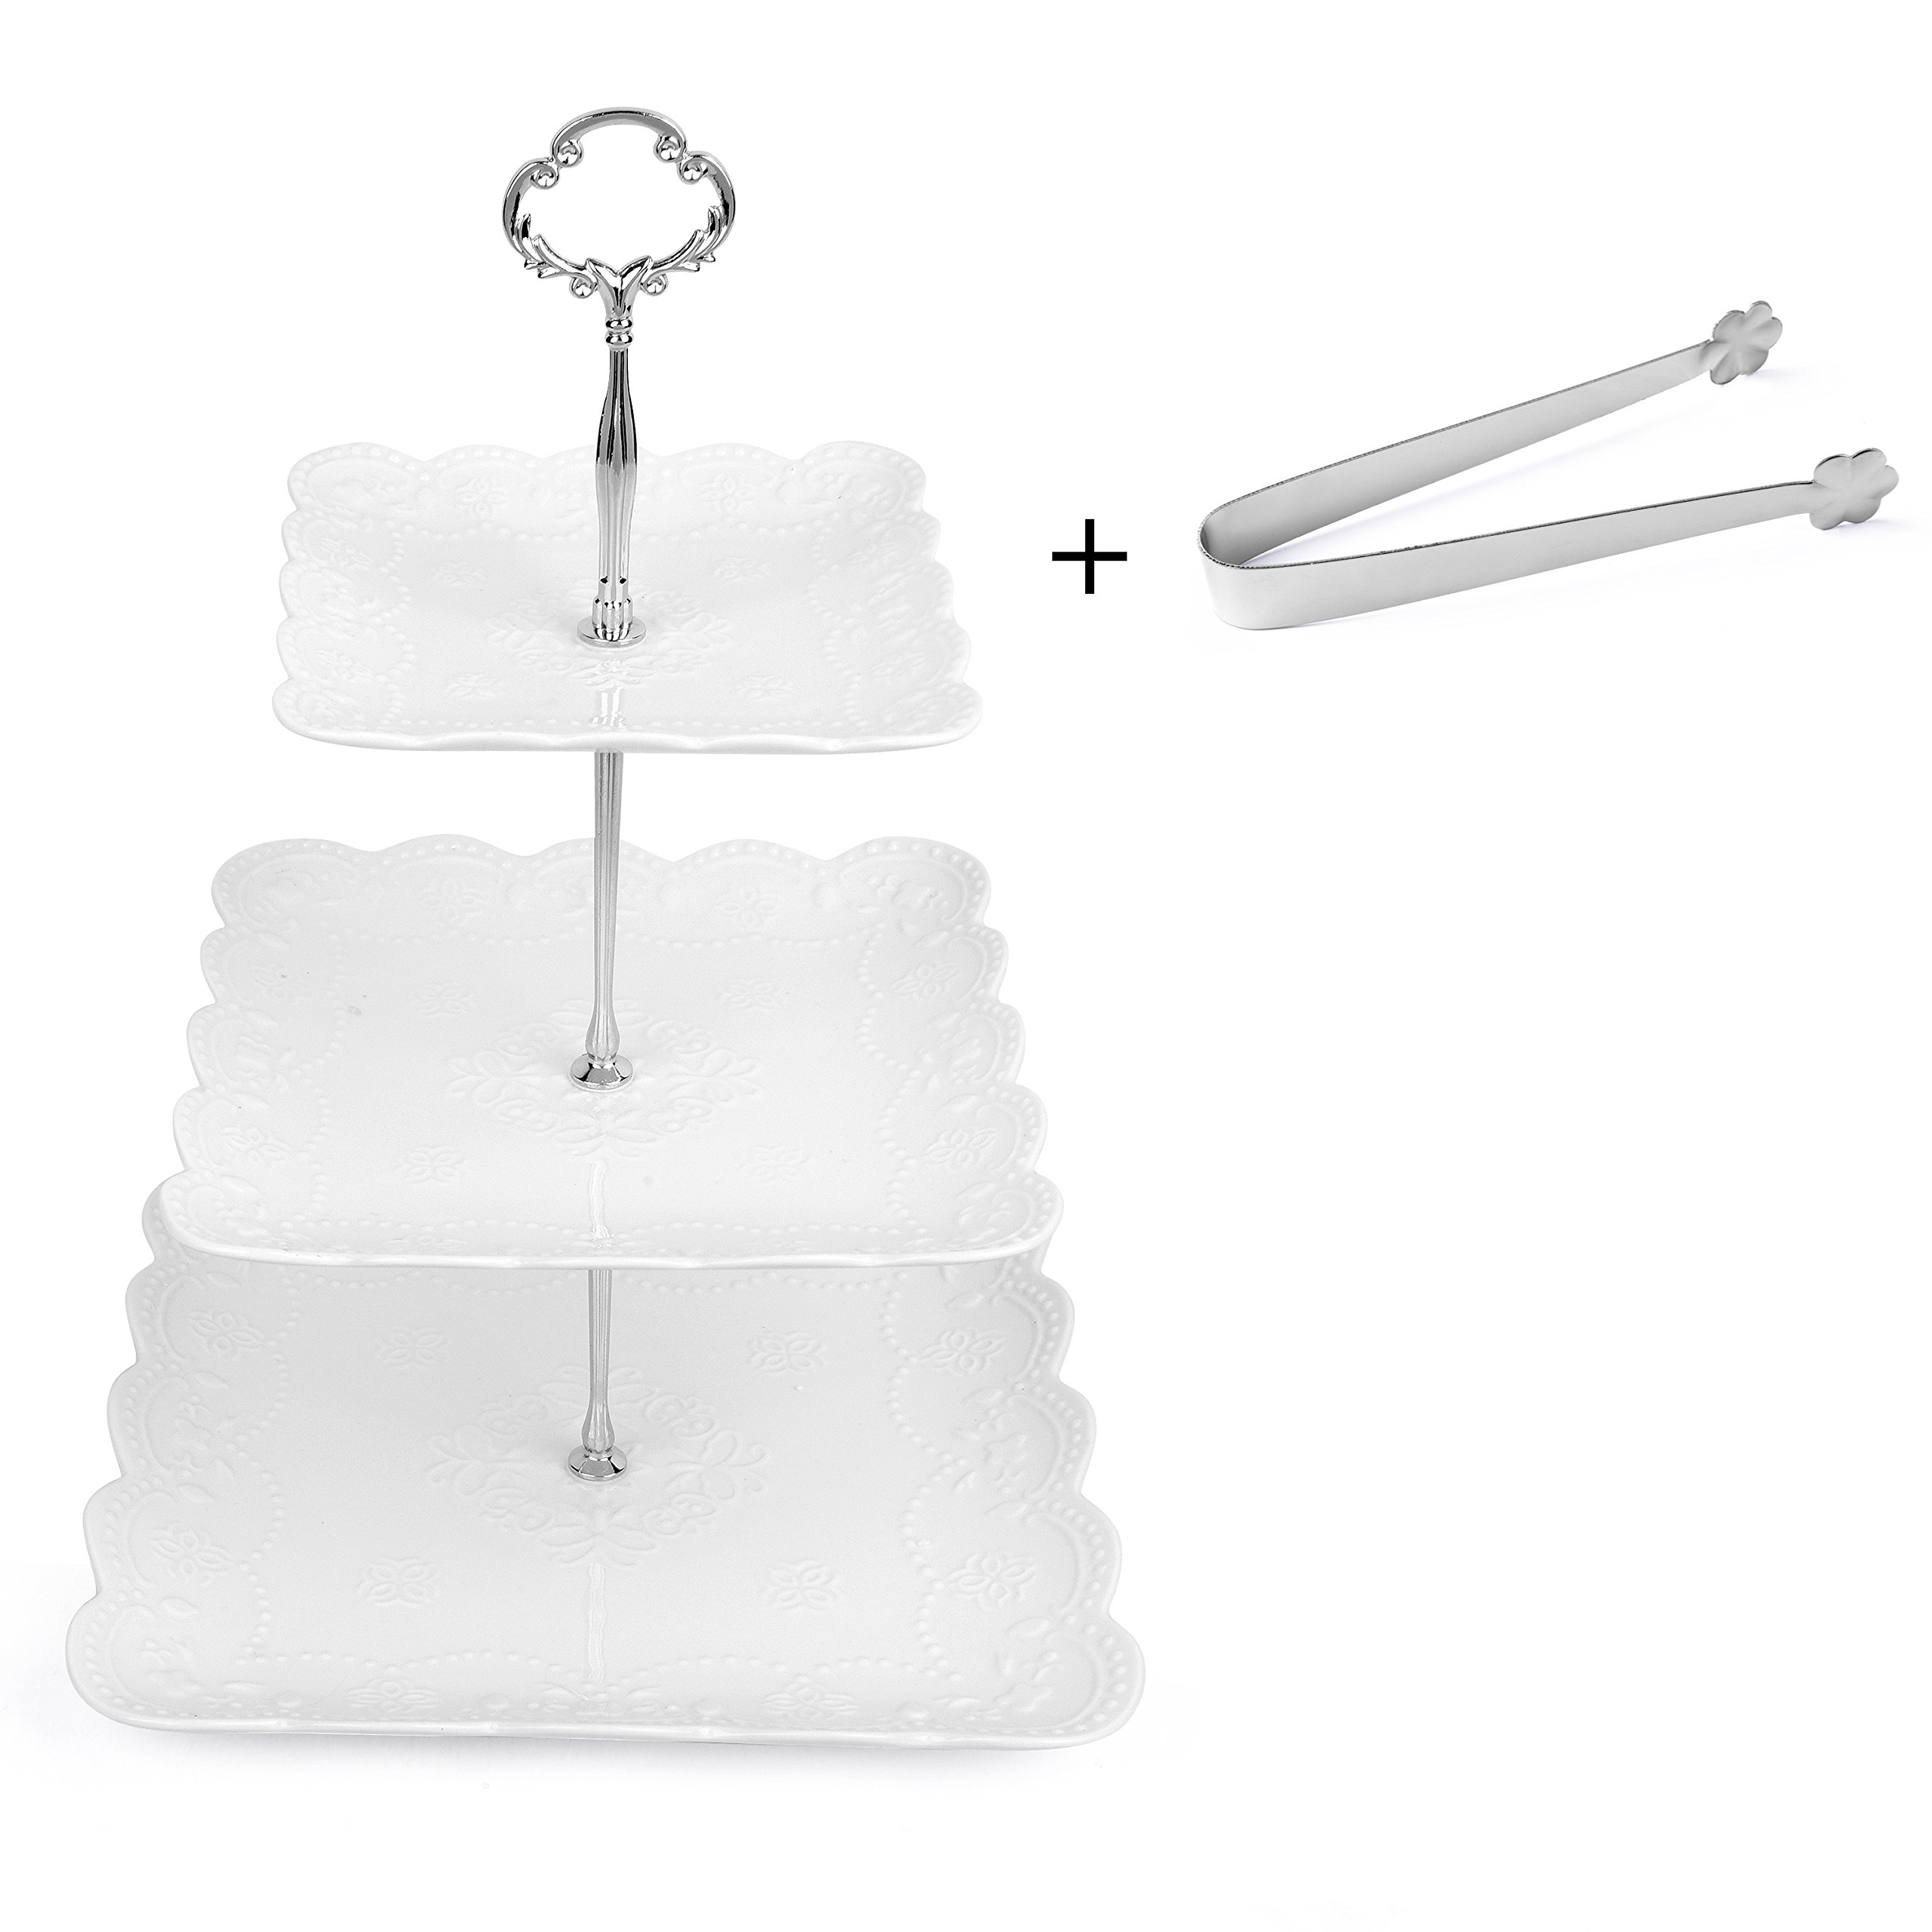 3 Tier Square Porcelain Cake Stand with Sugar Tongs - Party Food Server Display Set - Three Tier Dessert Stand - Perfect for your Tea Party, Baby Shower and Dessert Table - (White)